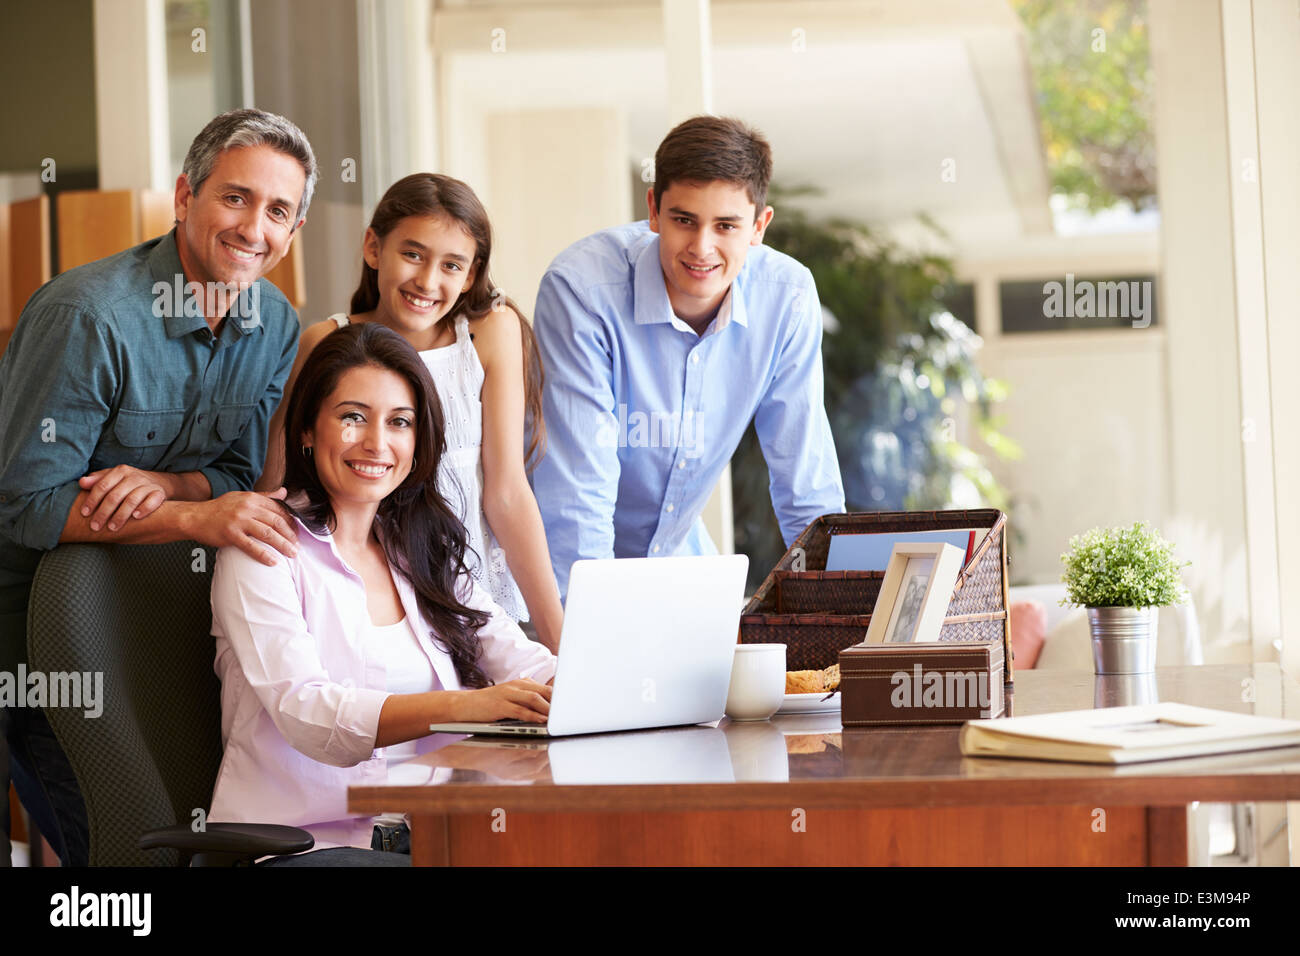 Portrait Of Family Using Laptop Together Photo Stock